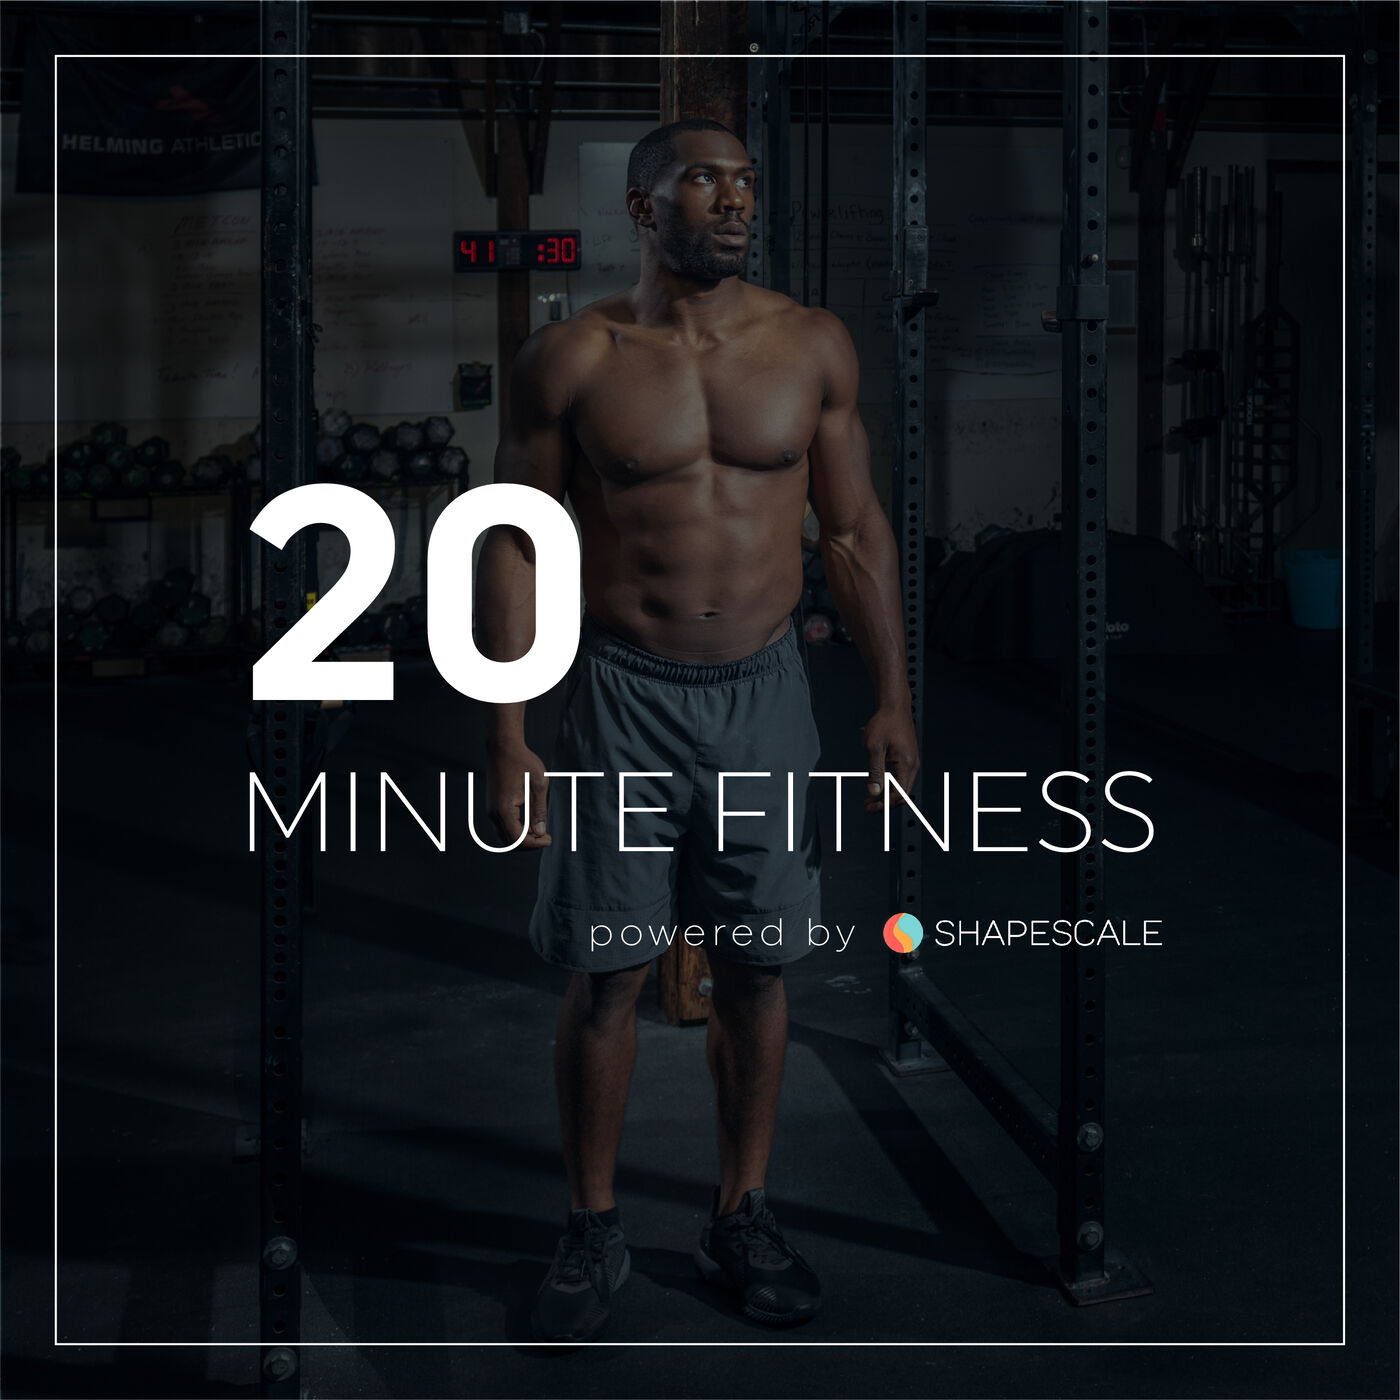 How To Keep Yourself Accountable & The Power Of Community With The Shape & Foster Team - 20 Minutes Fitness Episode #225